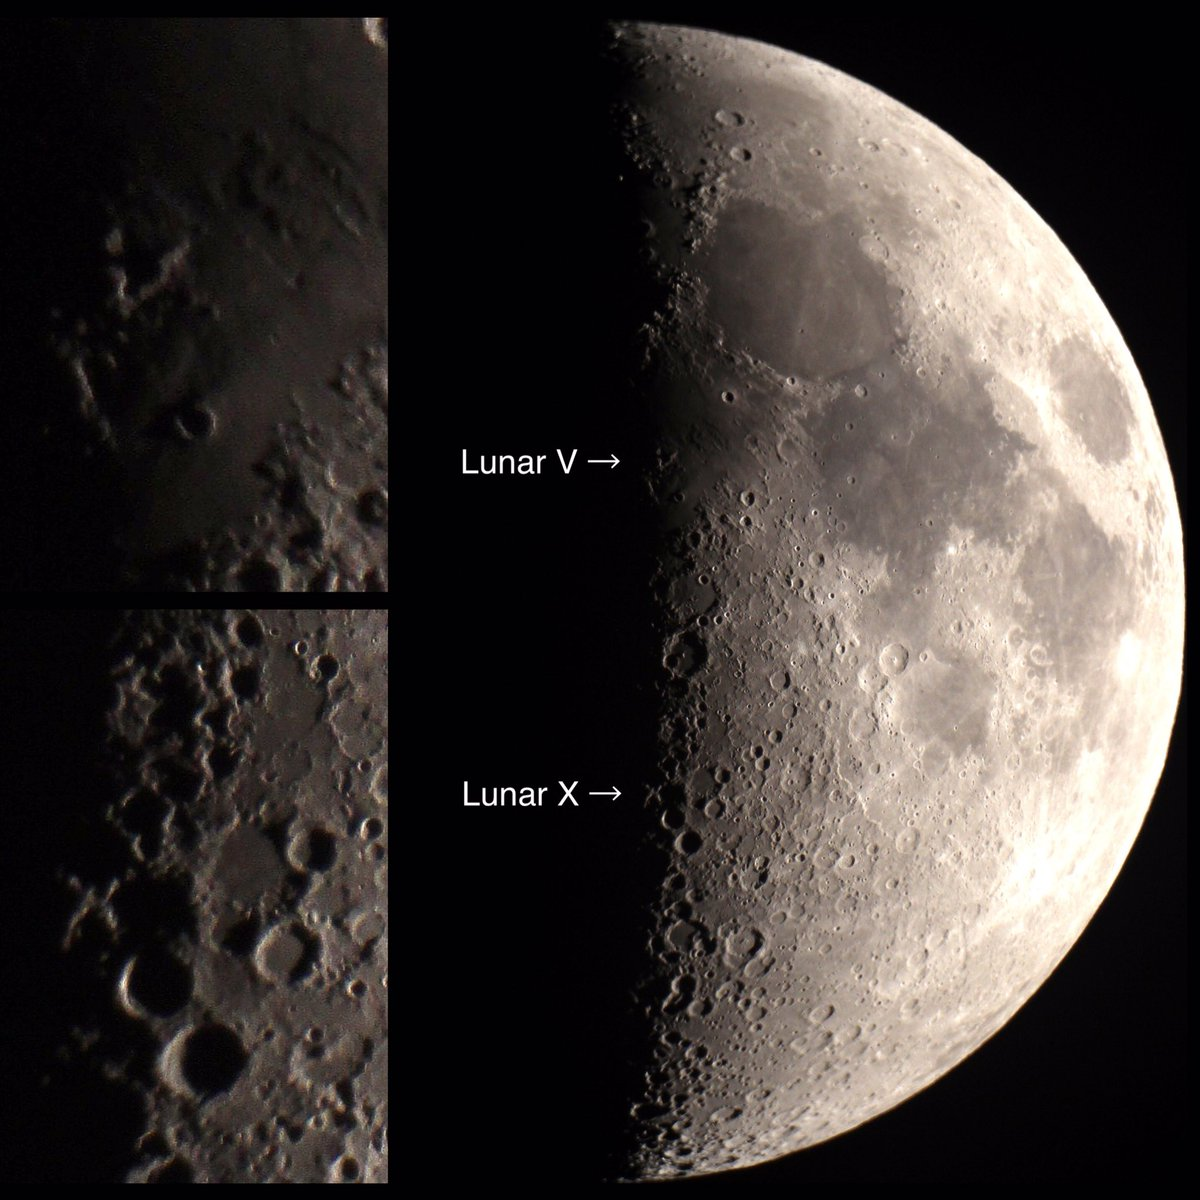 Astro Event: Lunar X and V (shadow features visible only a few hours each month) 7:50 UTC Jan 24 https://t.co/3ncFyULA1E